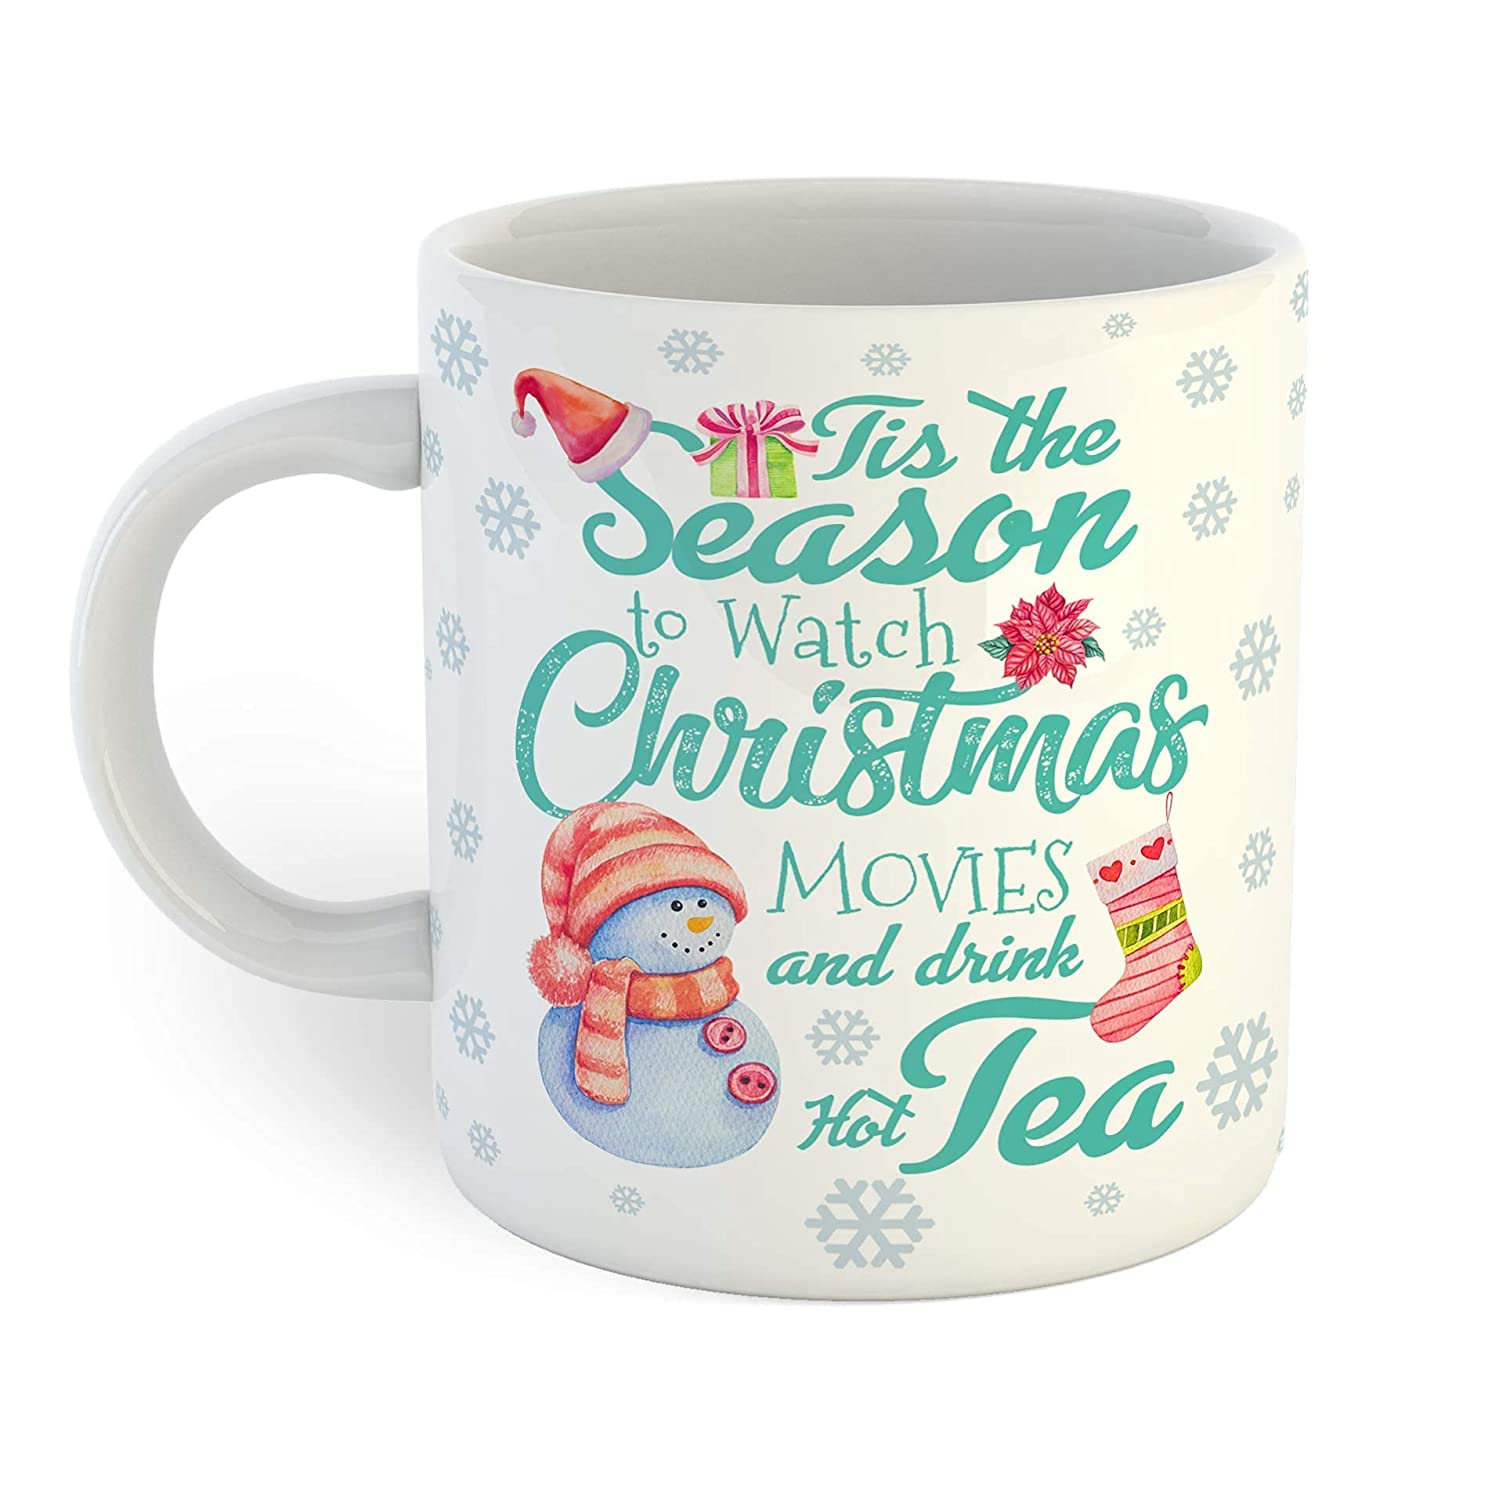 Outlet sale feature New arrival Tis The Season Mug Coffee